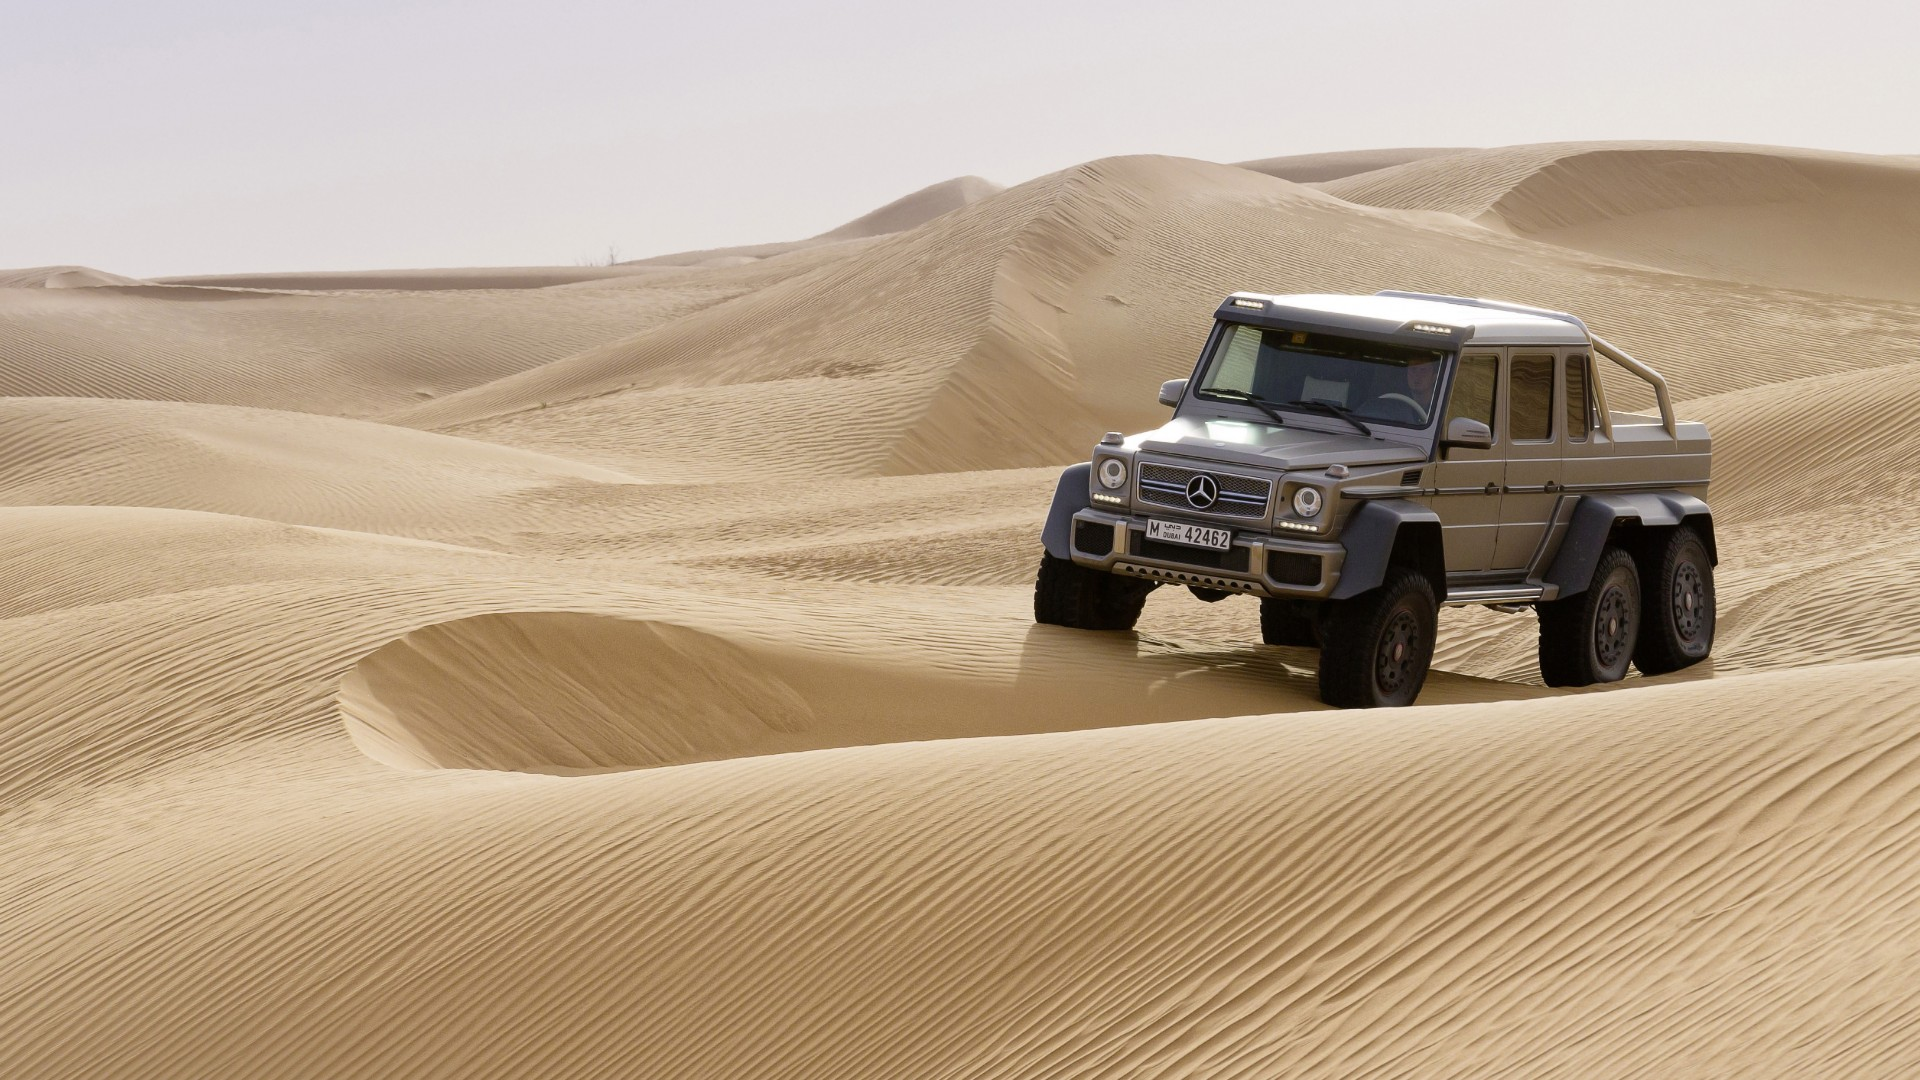 Mercedes-Benz G 63 AMG 6x6, SUV, Mercedes, Brabus G 63 700, G-Class, off-road, luxury cars, test drive, desert (horizontal)